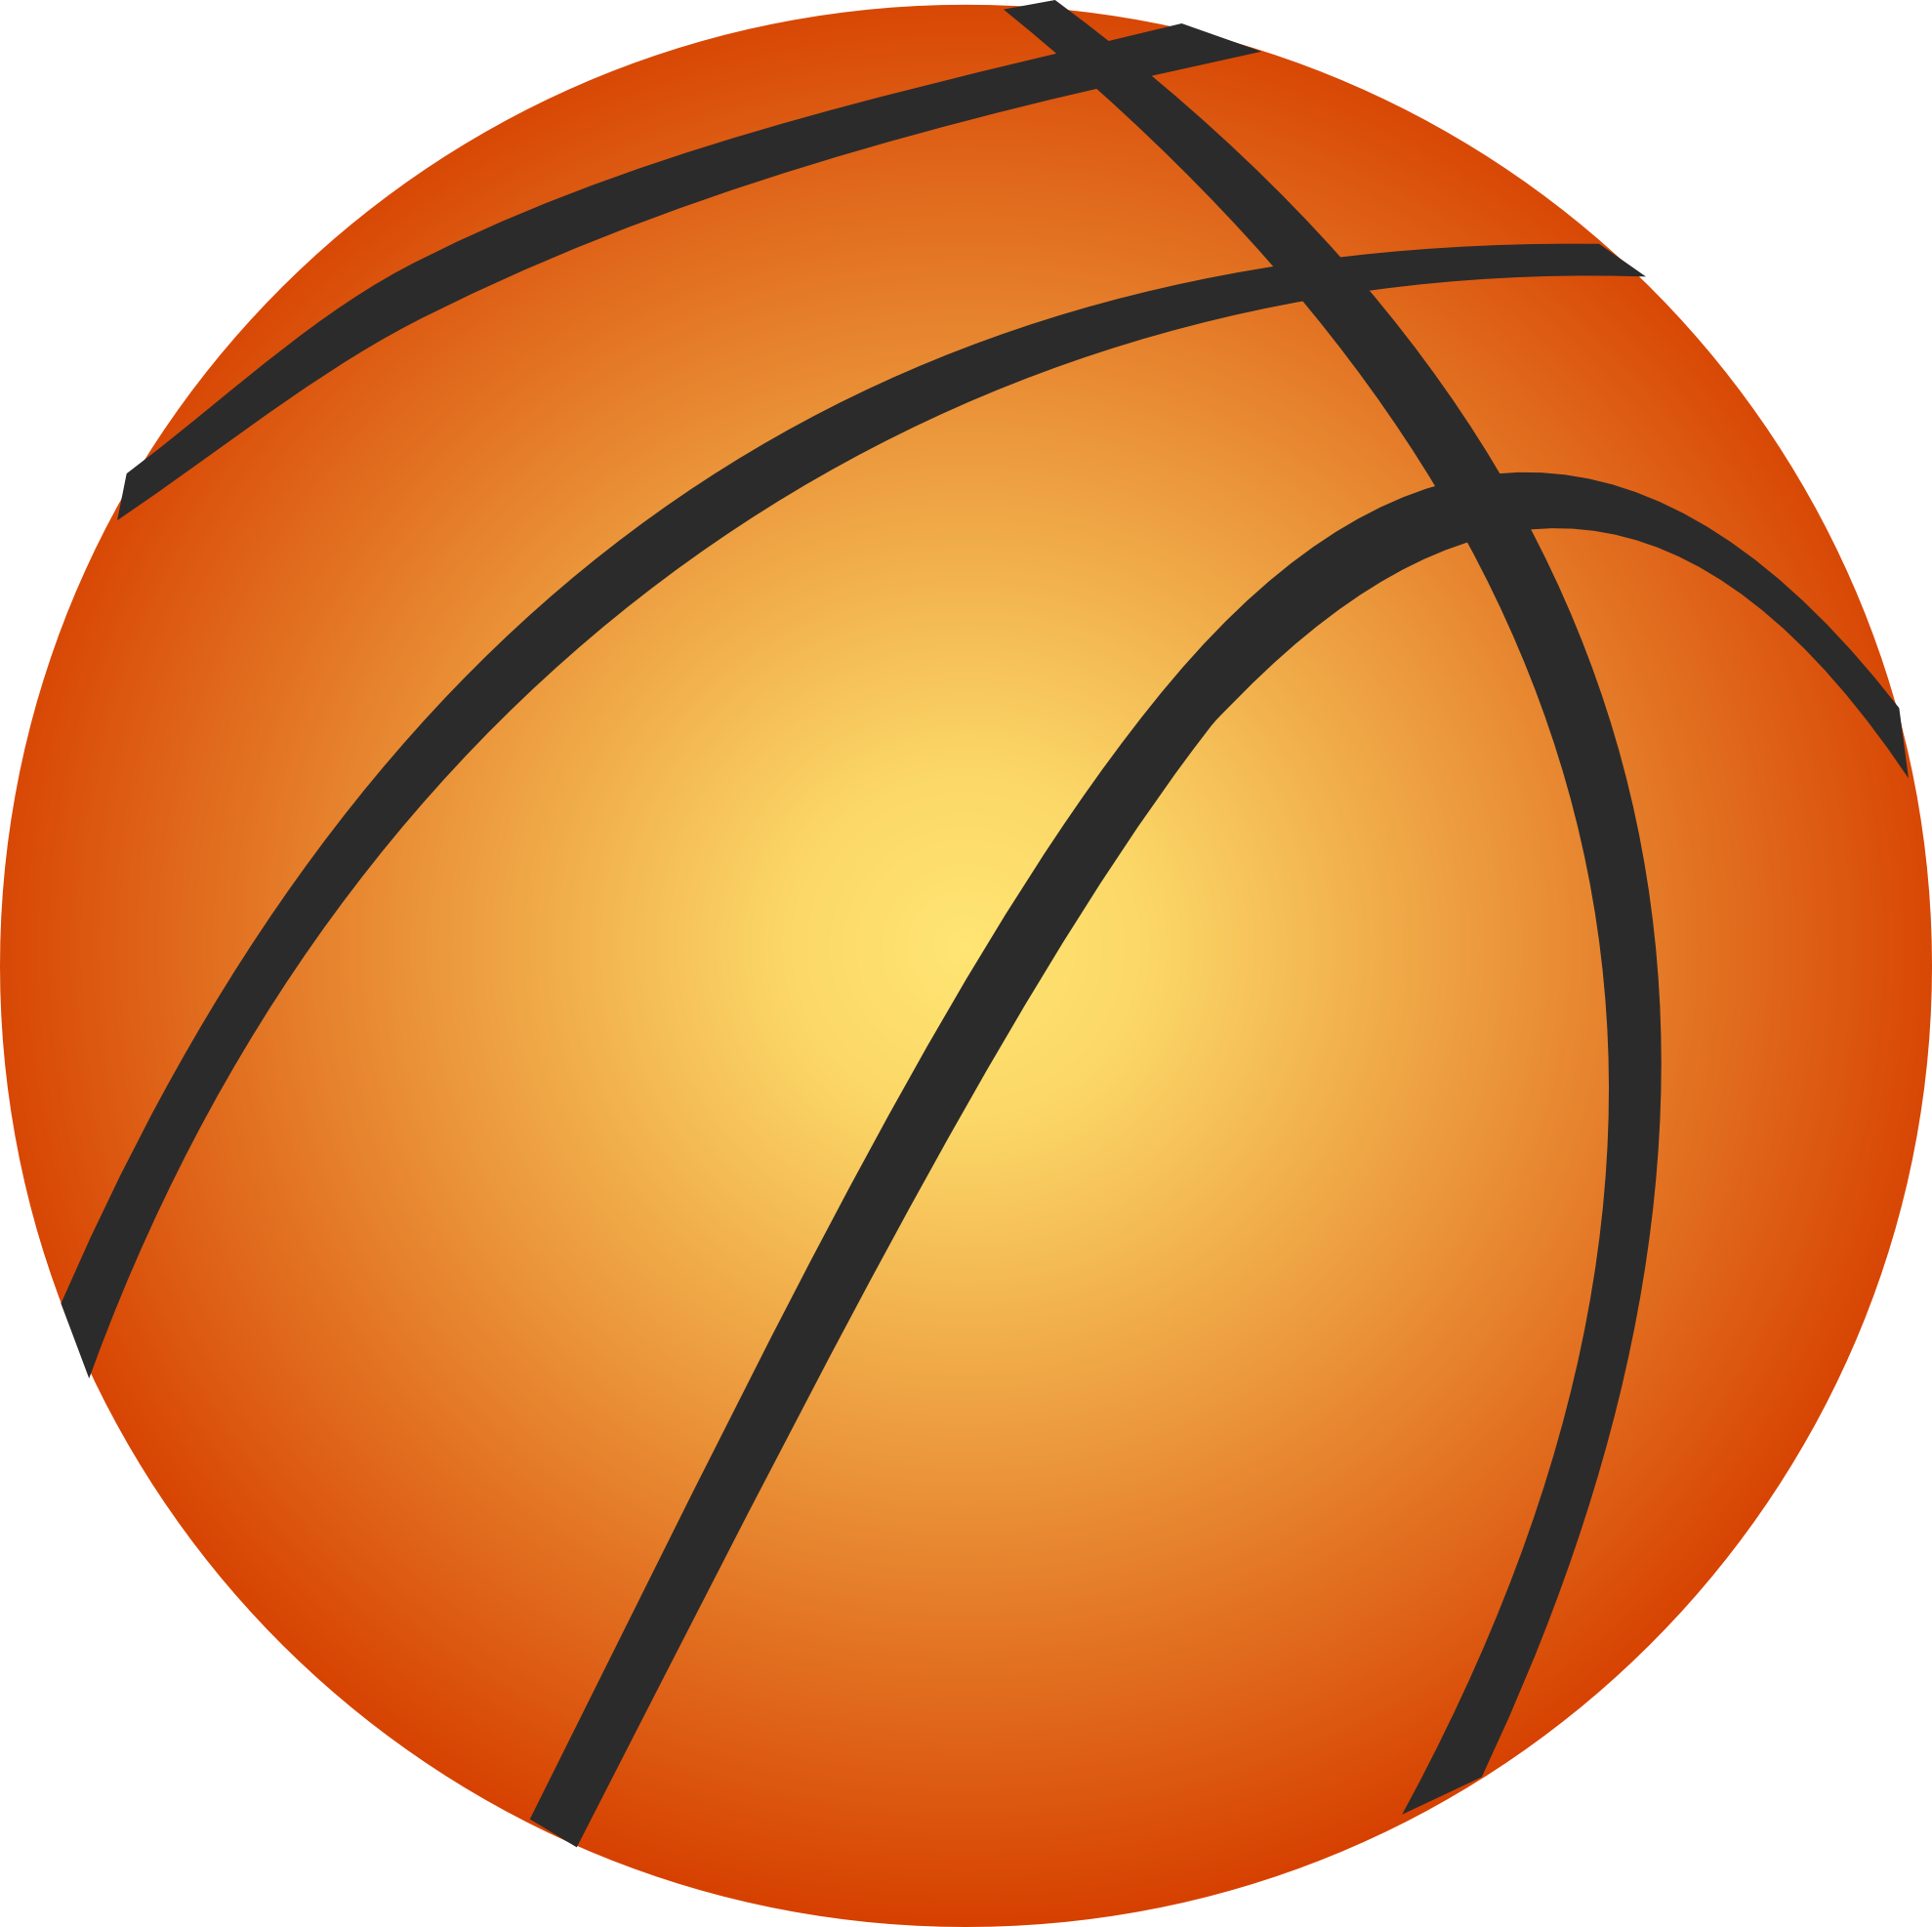 Clip art tags june. Basketball ball over court clipart